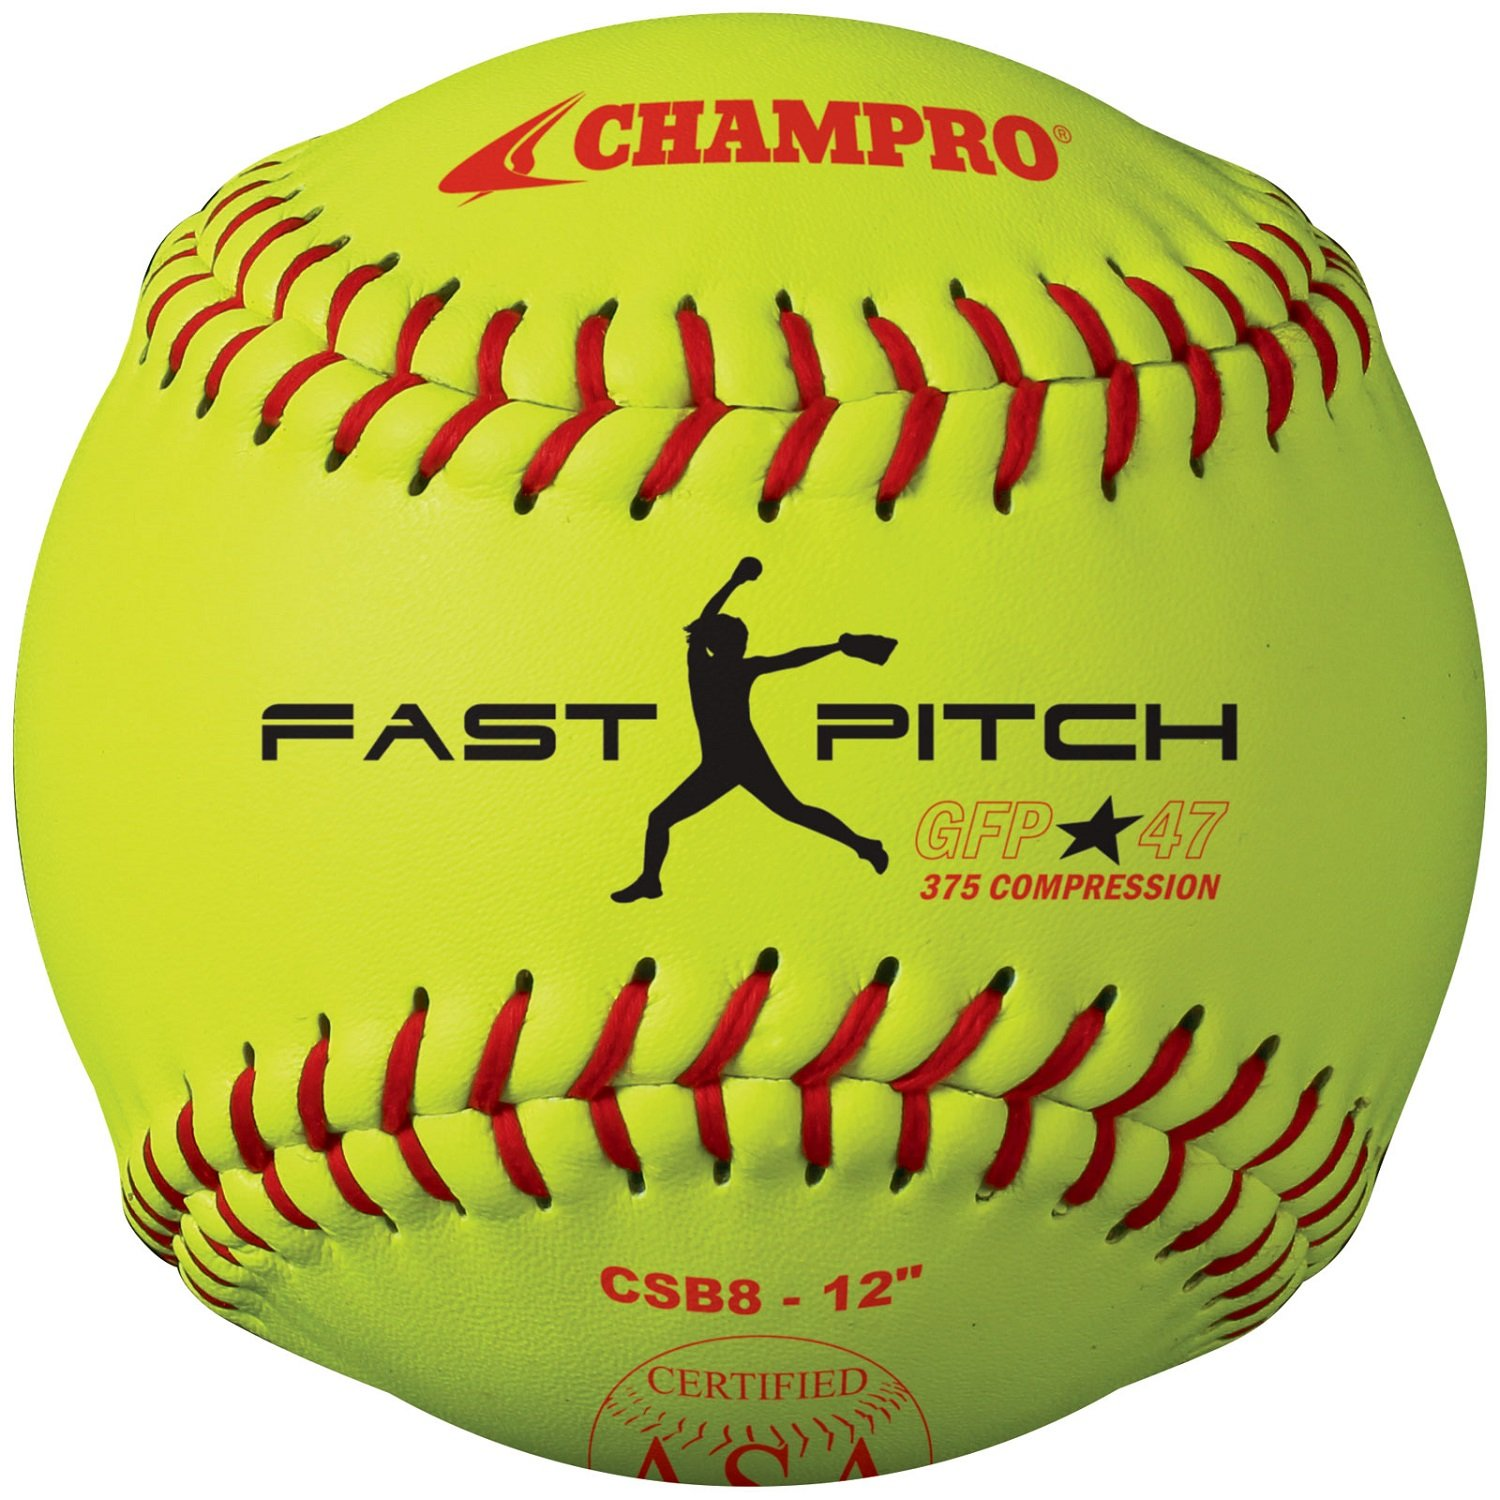 Champro Game ASA Pack Fastpitch .47 ASA COR, 375 Compression, 30cm Poly Synthetic Cover, Red Stiches (Optic Yellow, 30cm ), Pack of 12 B004HH781G, 平賀町:764a9ac7 --- sayselfiee.com